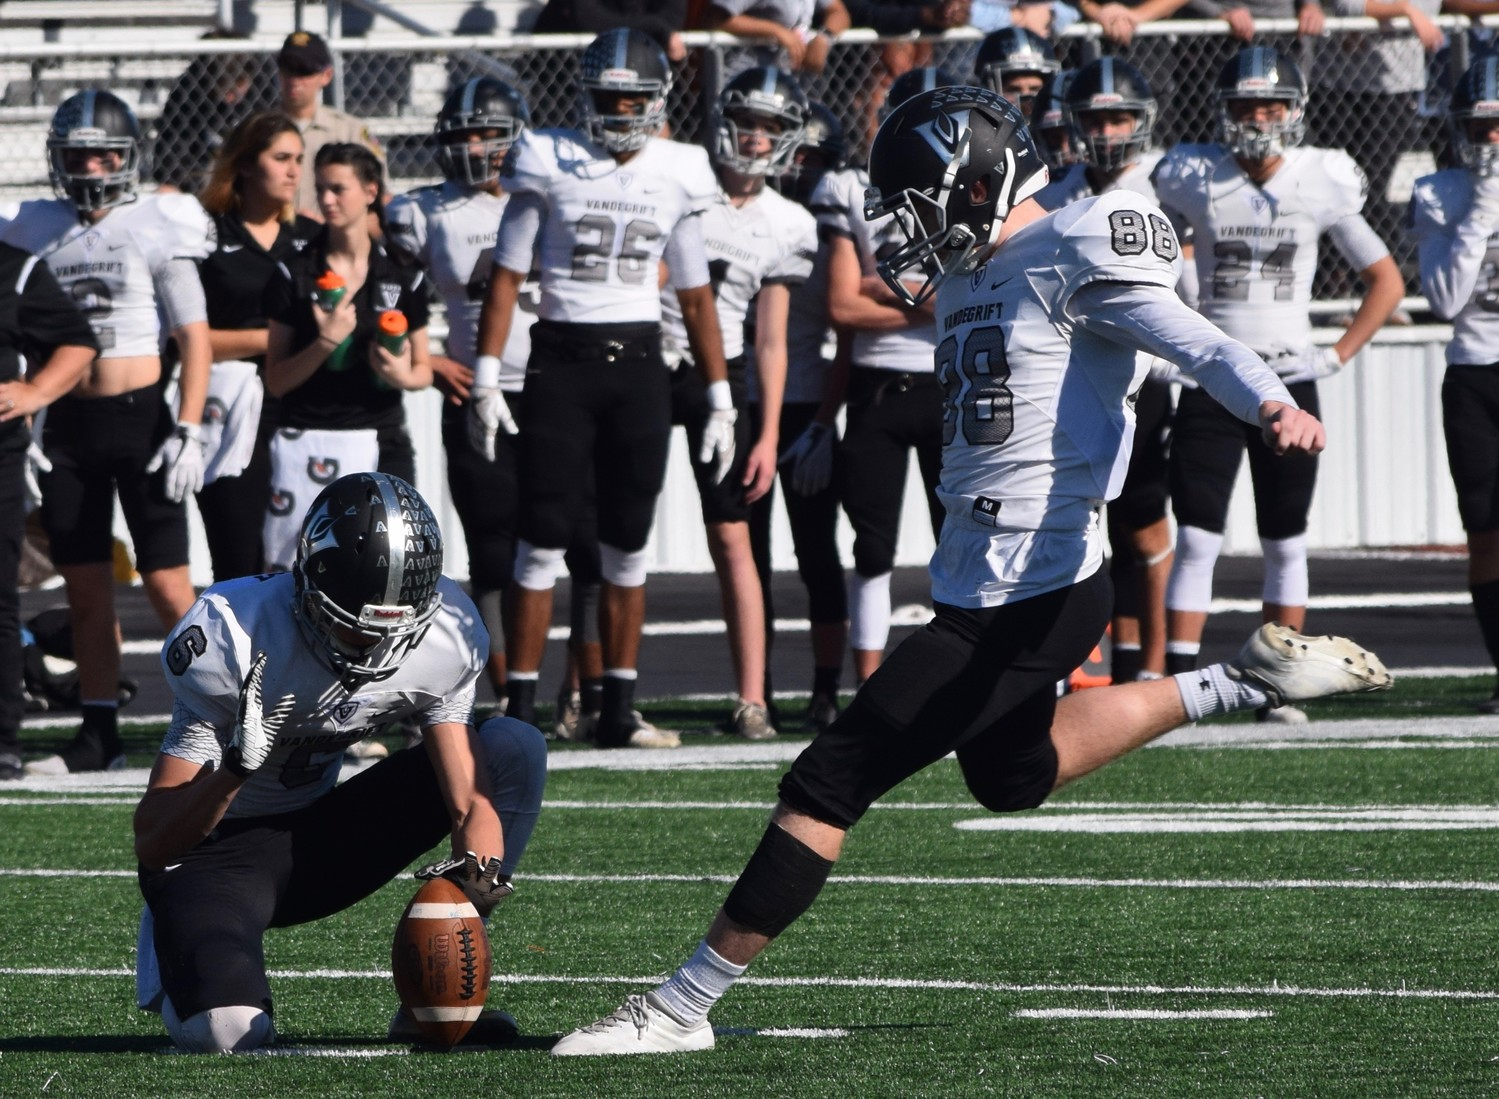 Alex Stadhaus and Vandegrift lost to Cibolo Steele 36-18 in the area round of the playoffs Friday in New Braunfels.